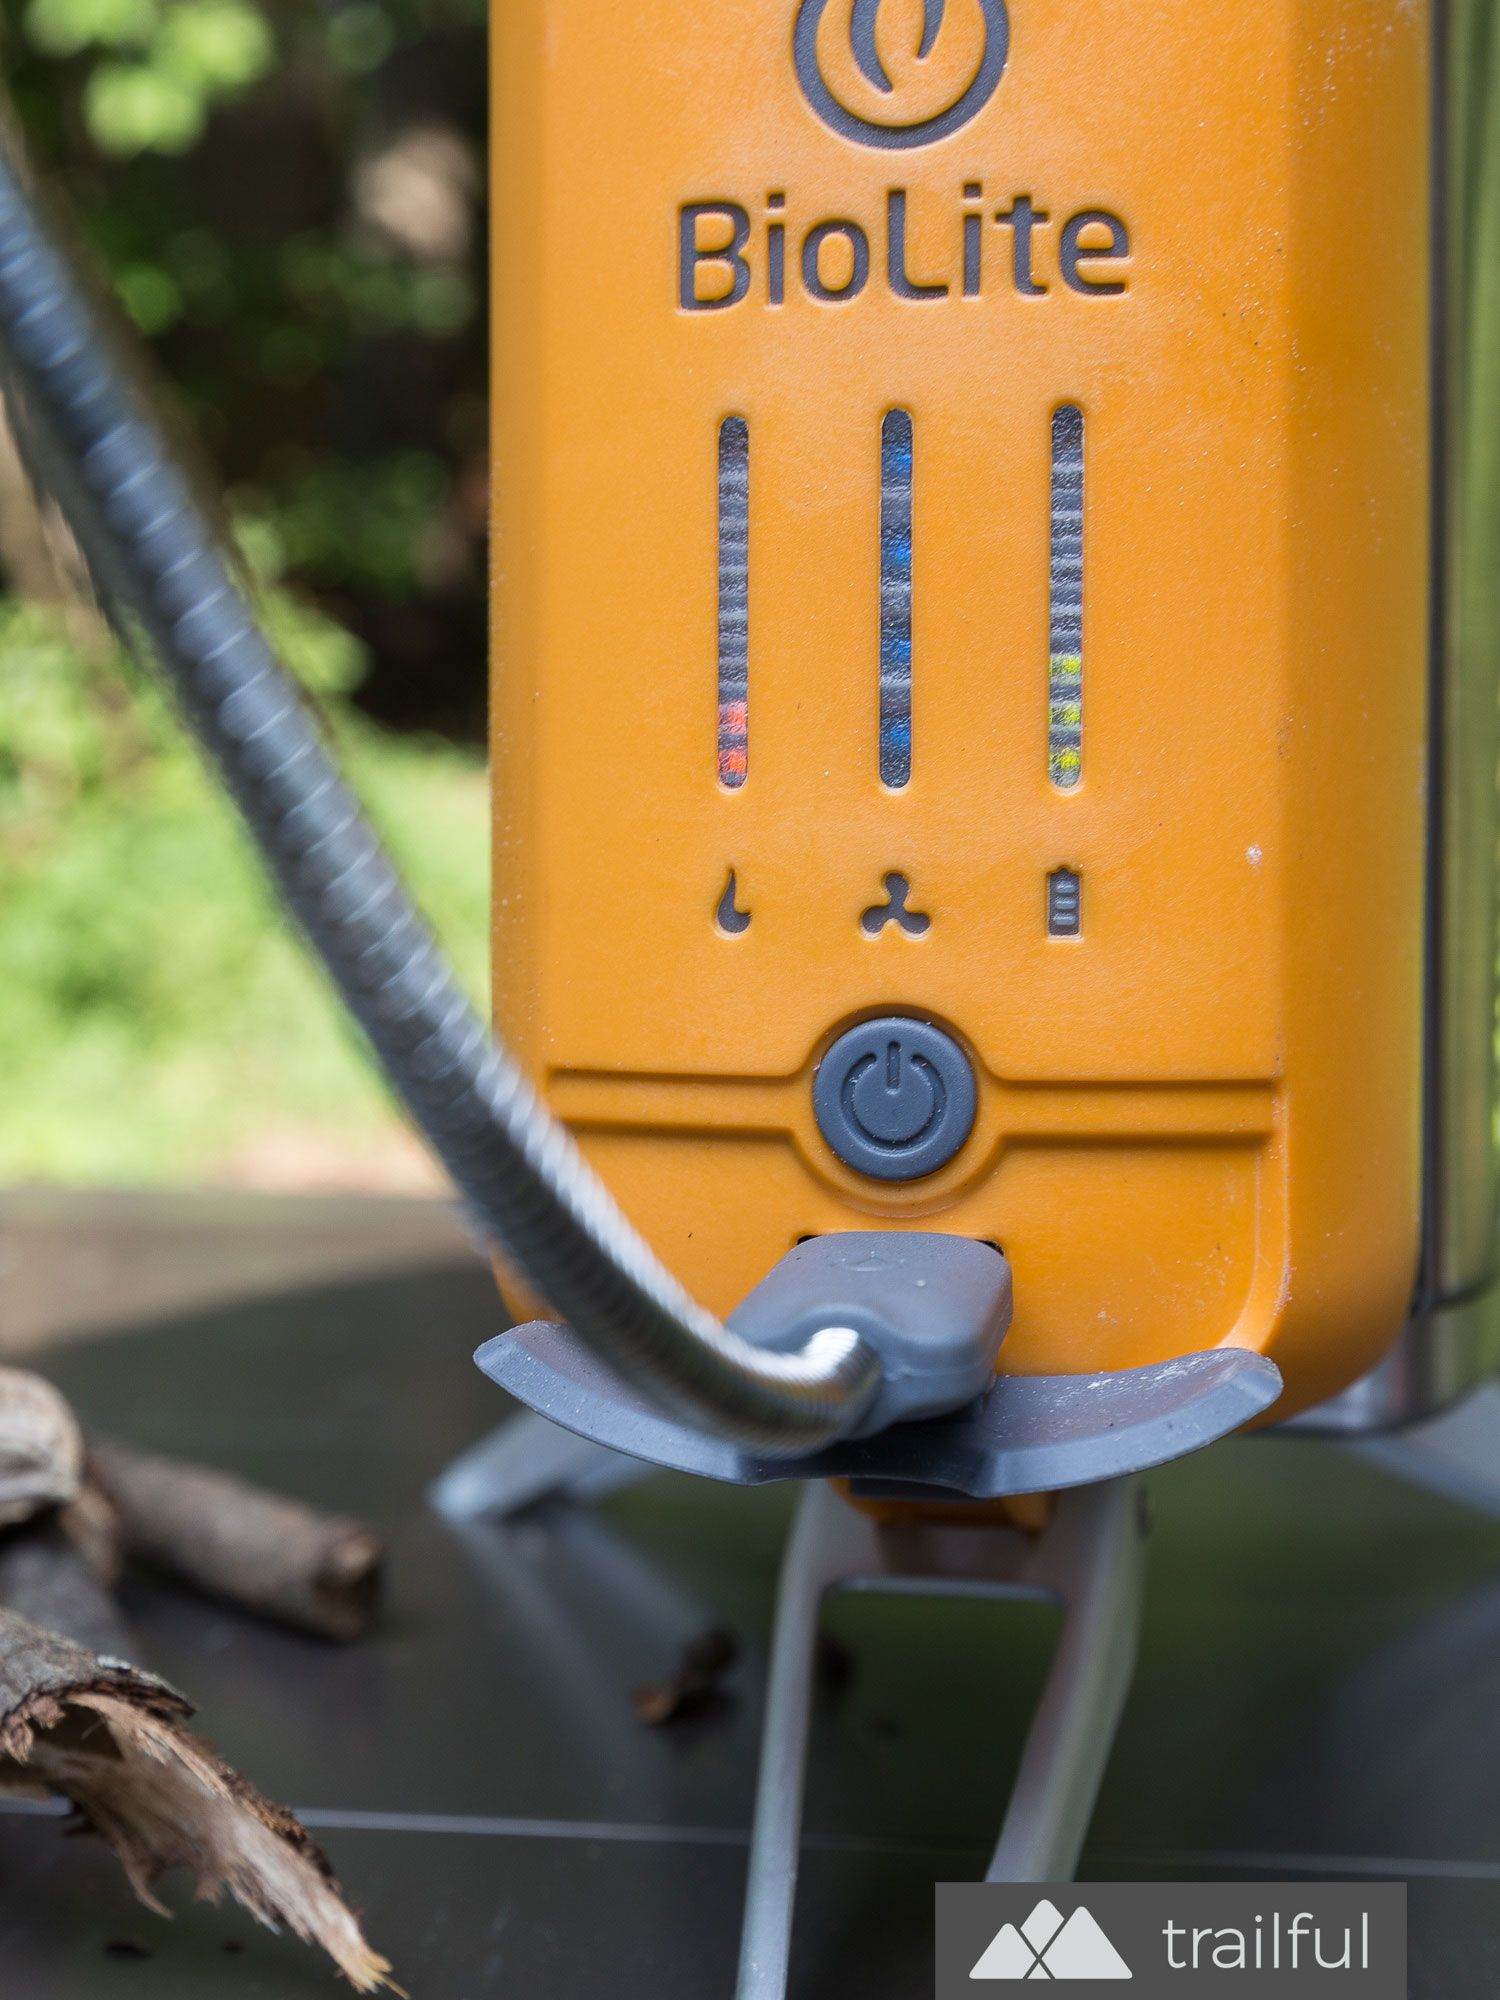 Biolite Campstove 2 And Portable Grill Review Outdoor Gear Wire Leads To Provide Additional Functions Such As Powering Trailer Trailful